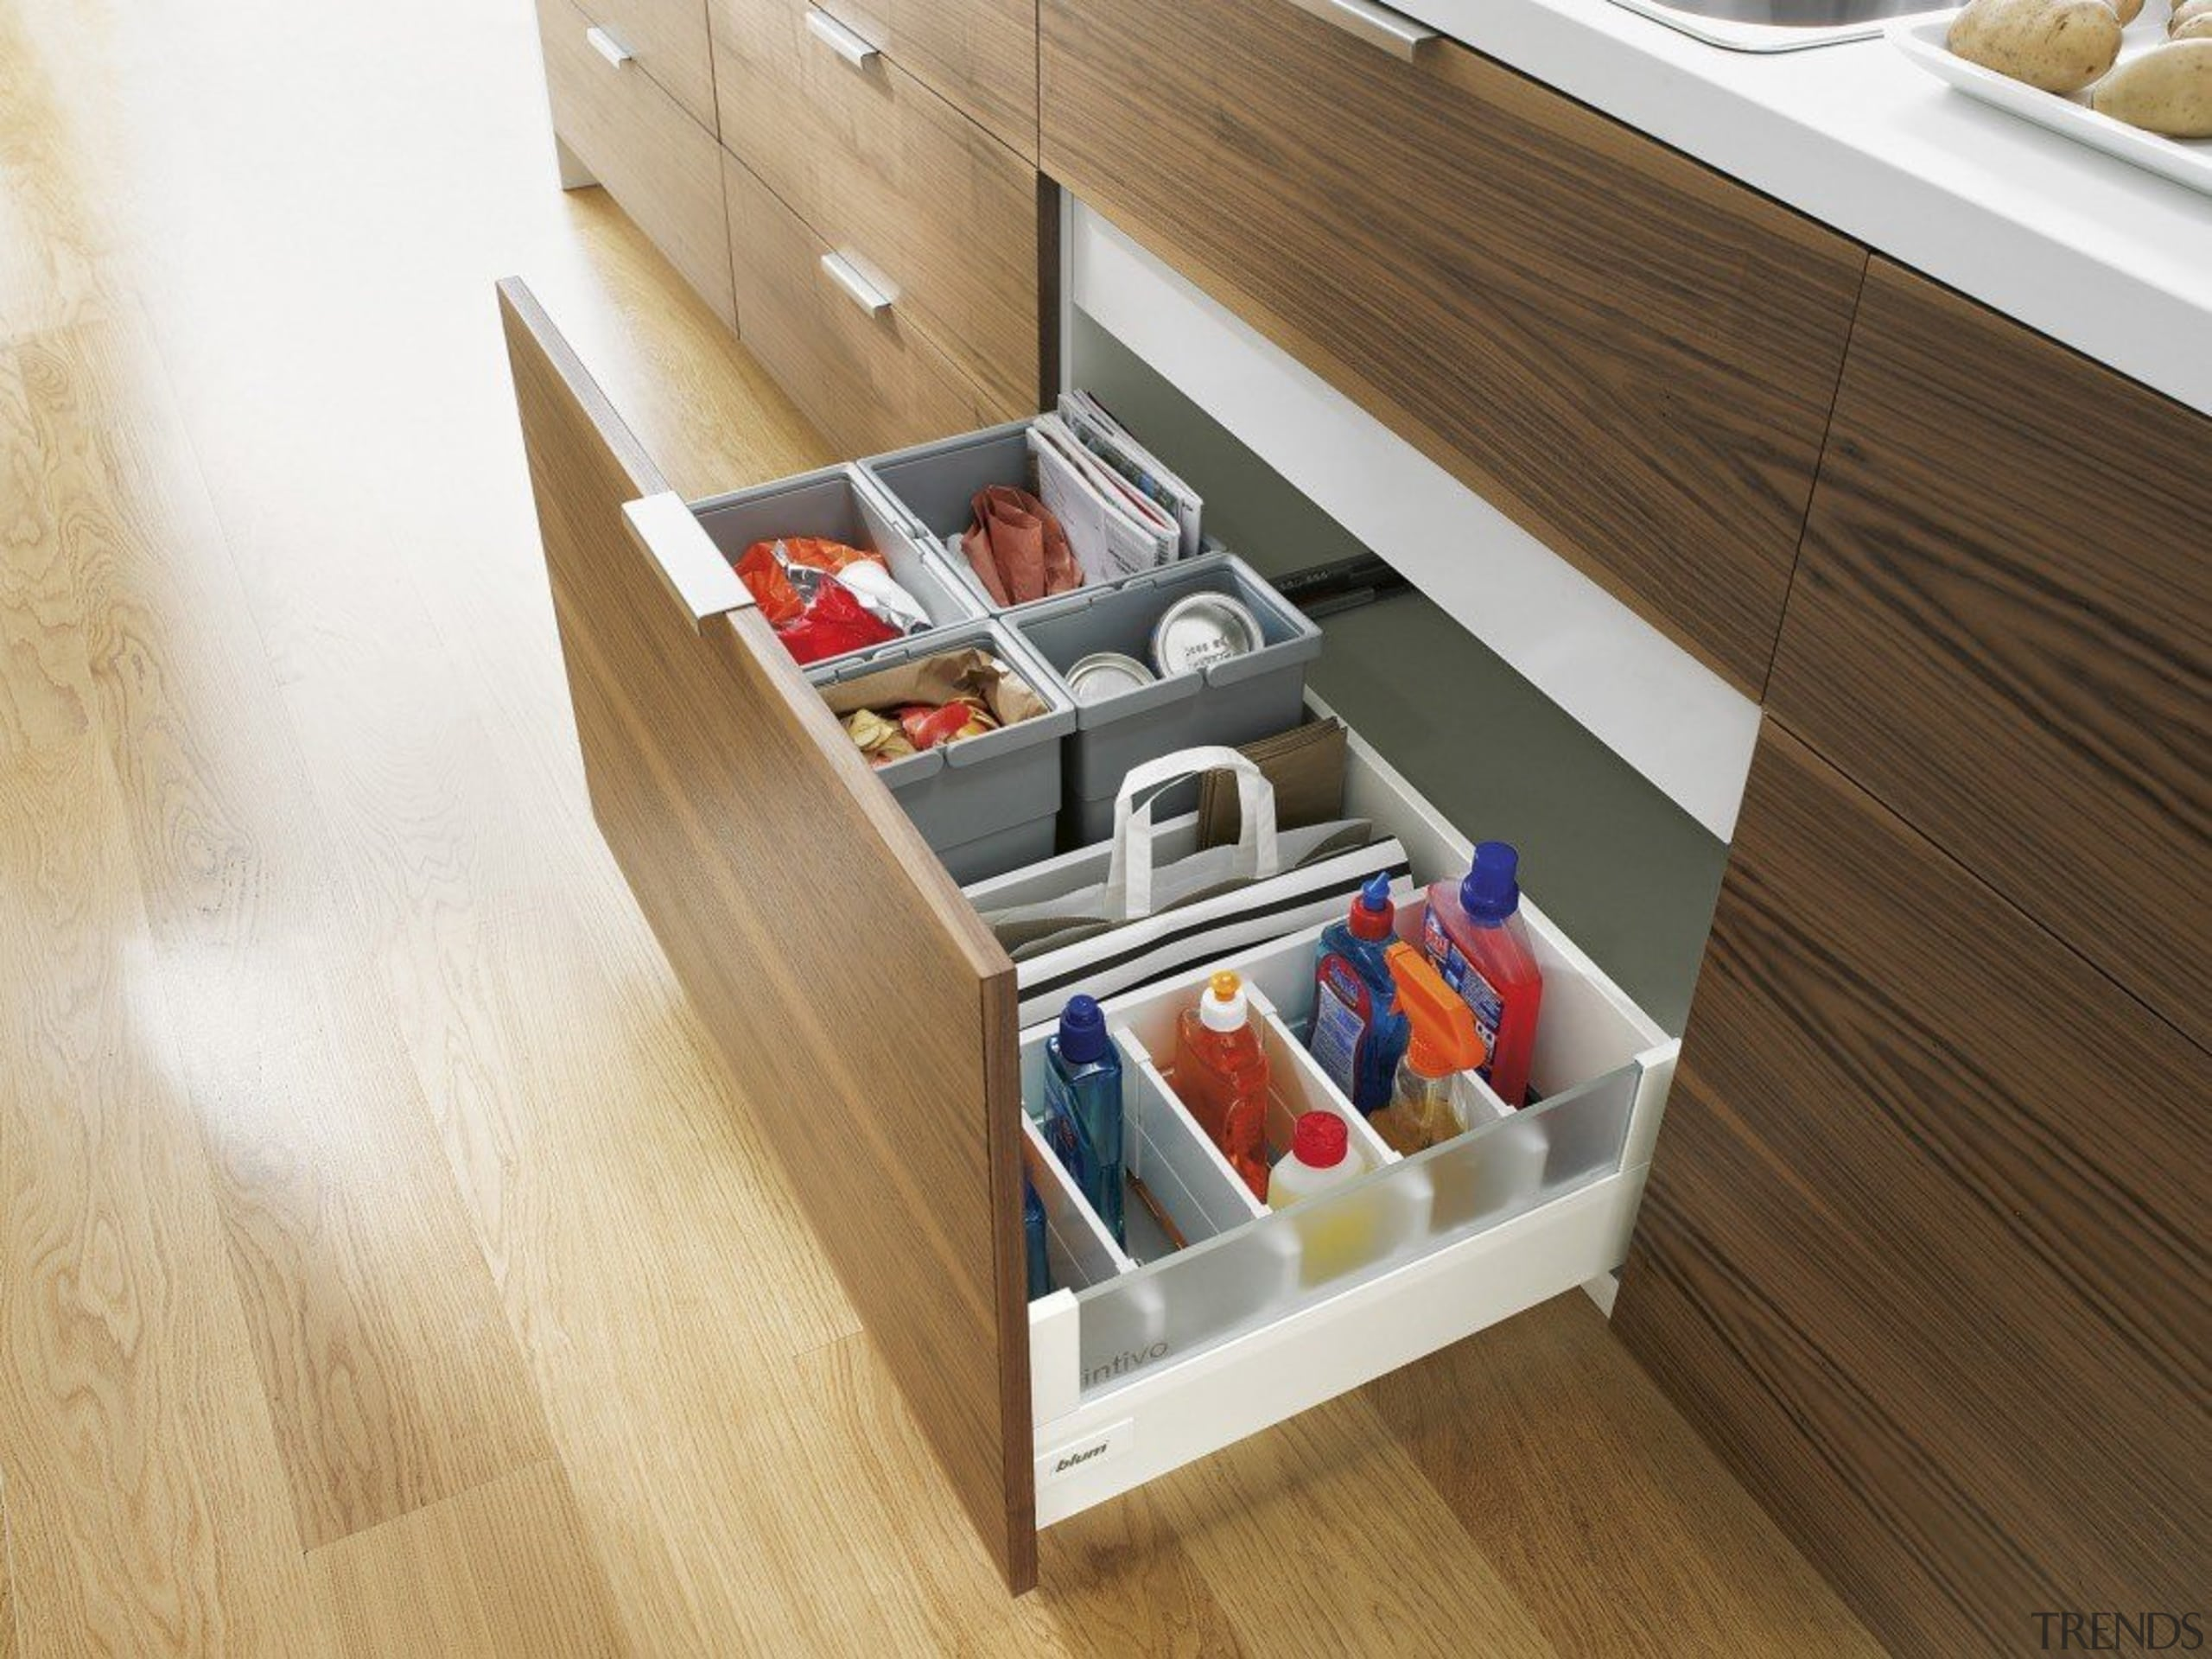 ORGA-LINE inner dividing system – so many practical drawer, floor, flooring, furniture, product, product design, shelf, shelving, wood, brown, white